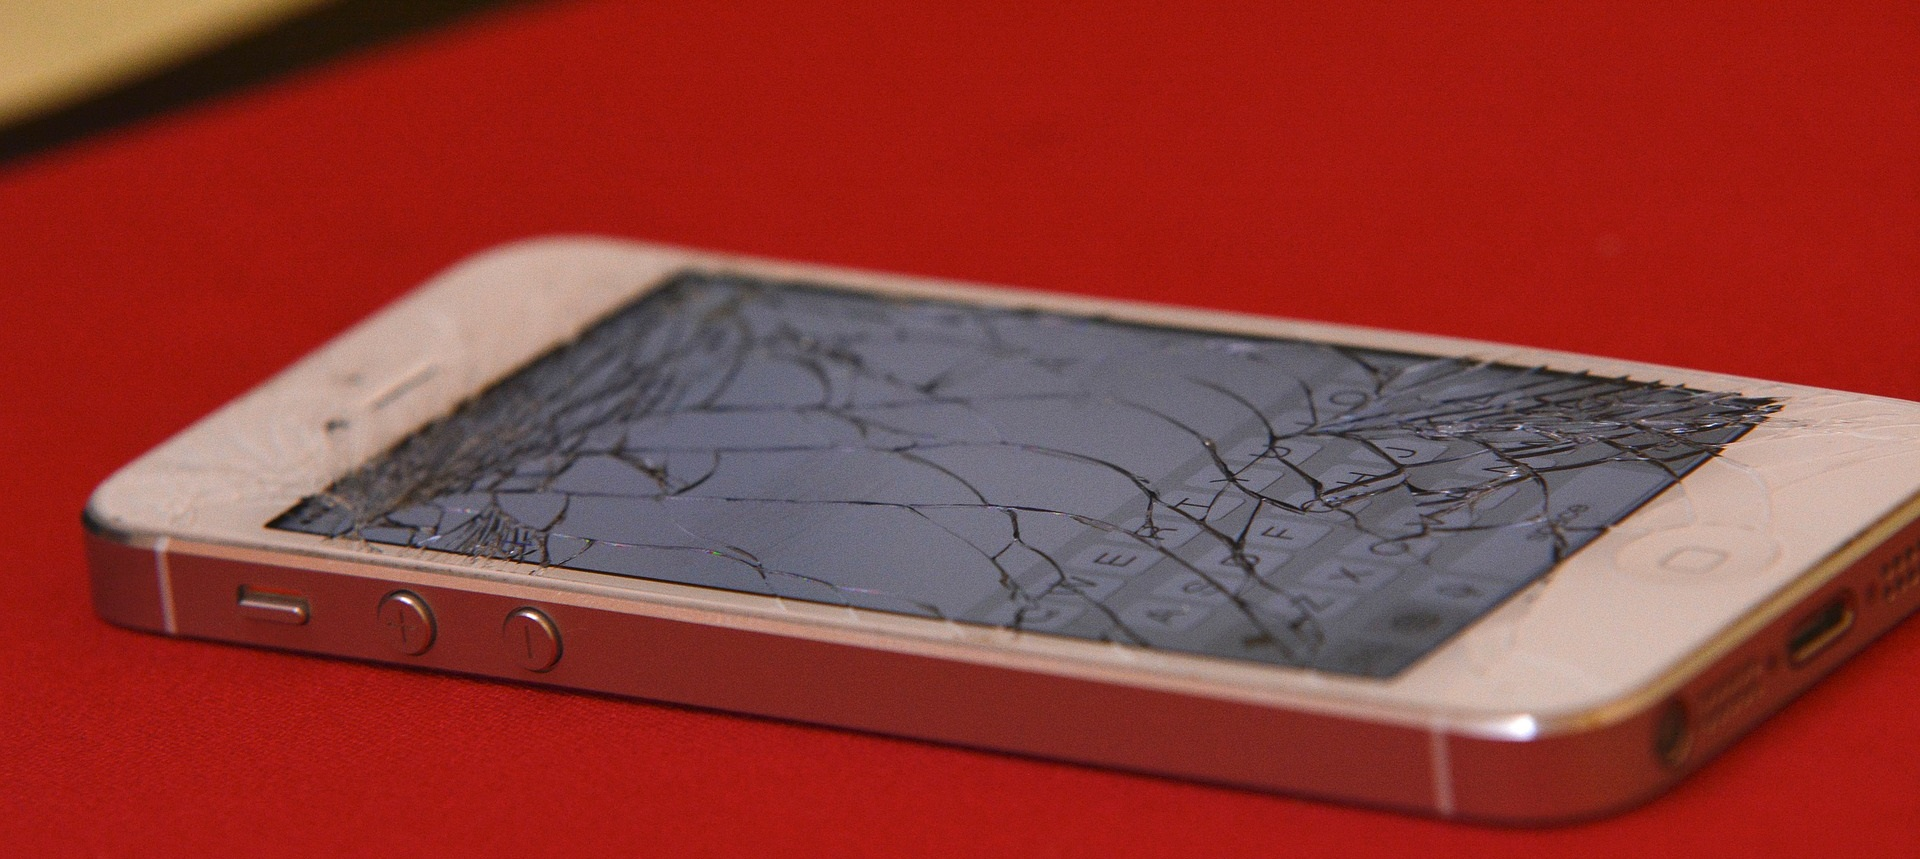 places that fix iphone screens for cheap the best iphone repair shops in toronto orchard 20517